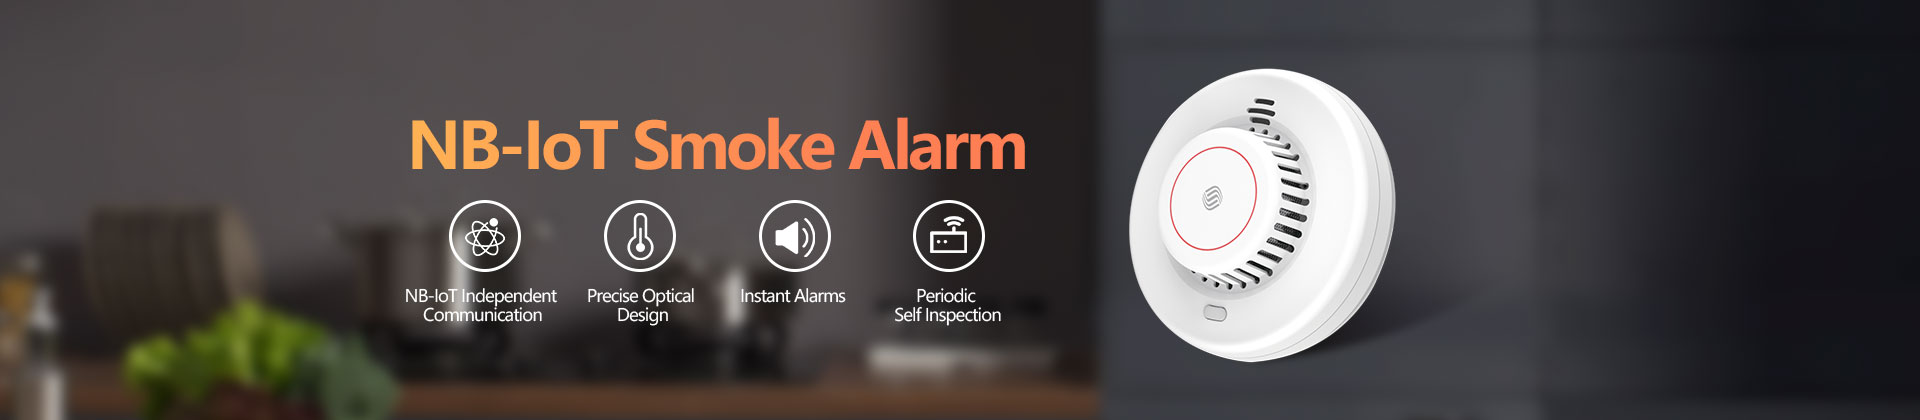 NB-IoT Smoke Alarm